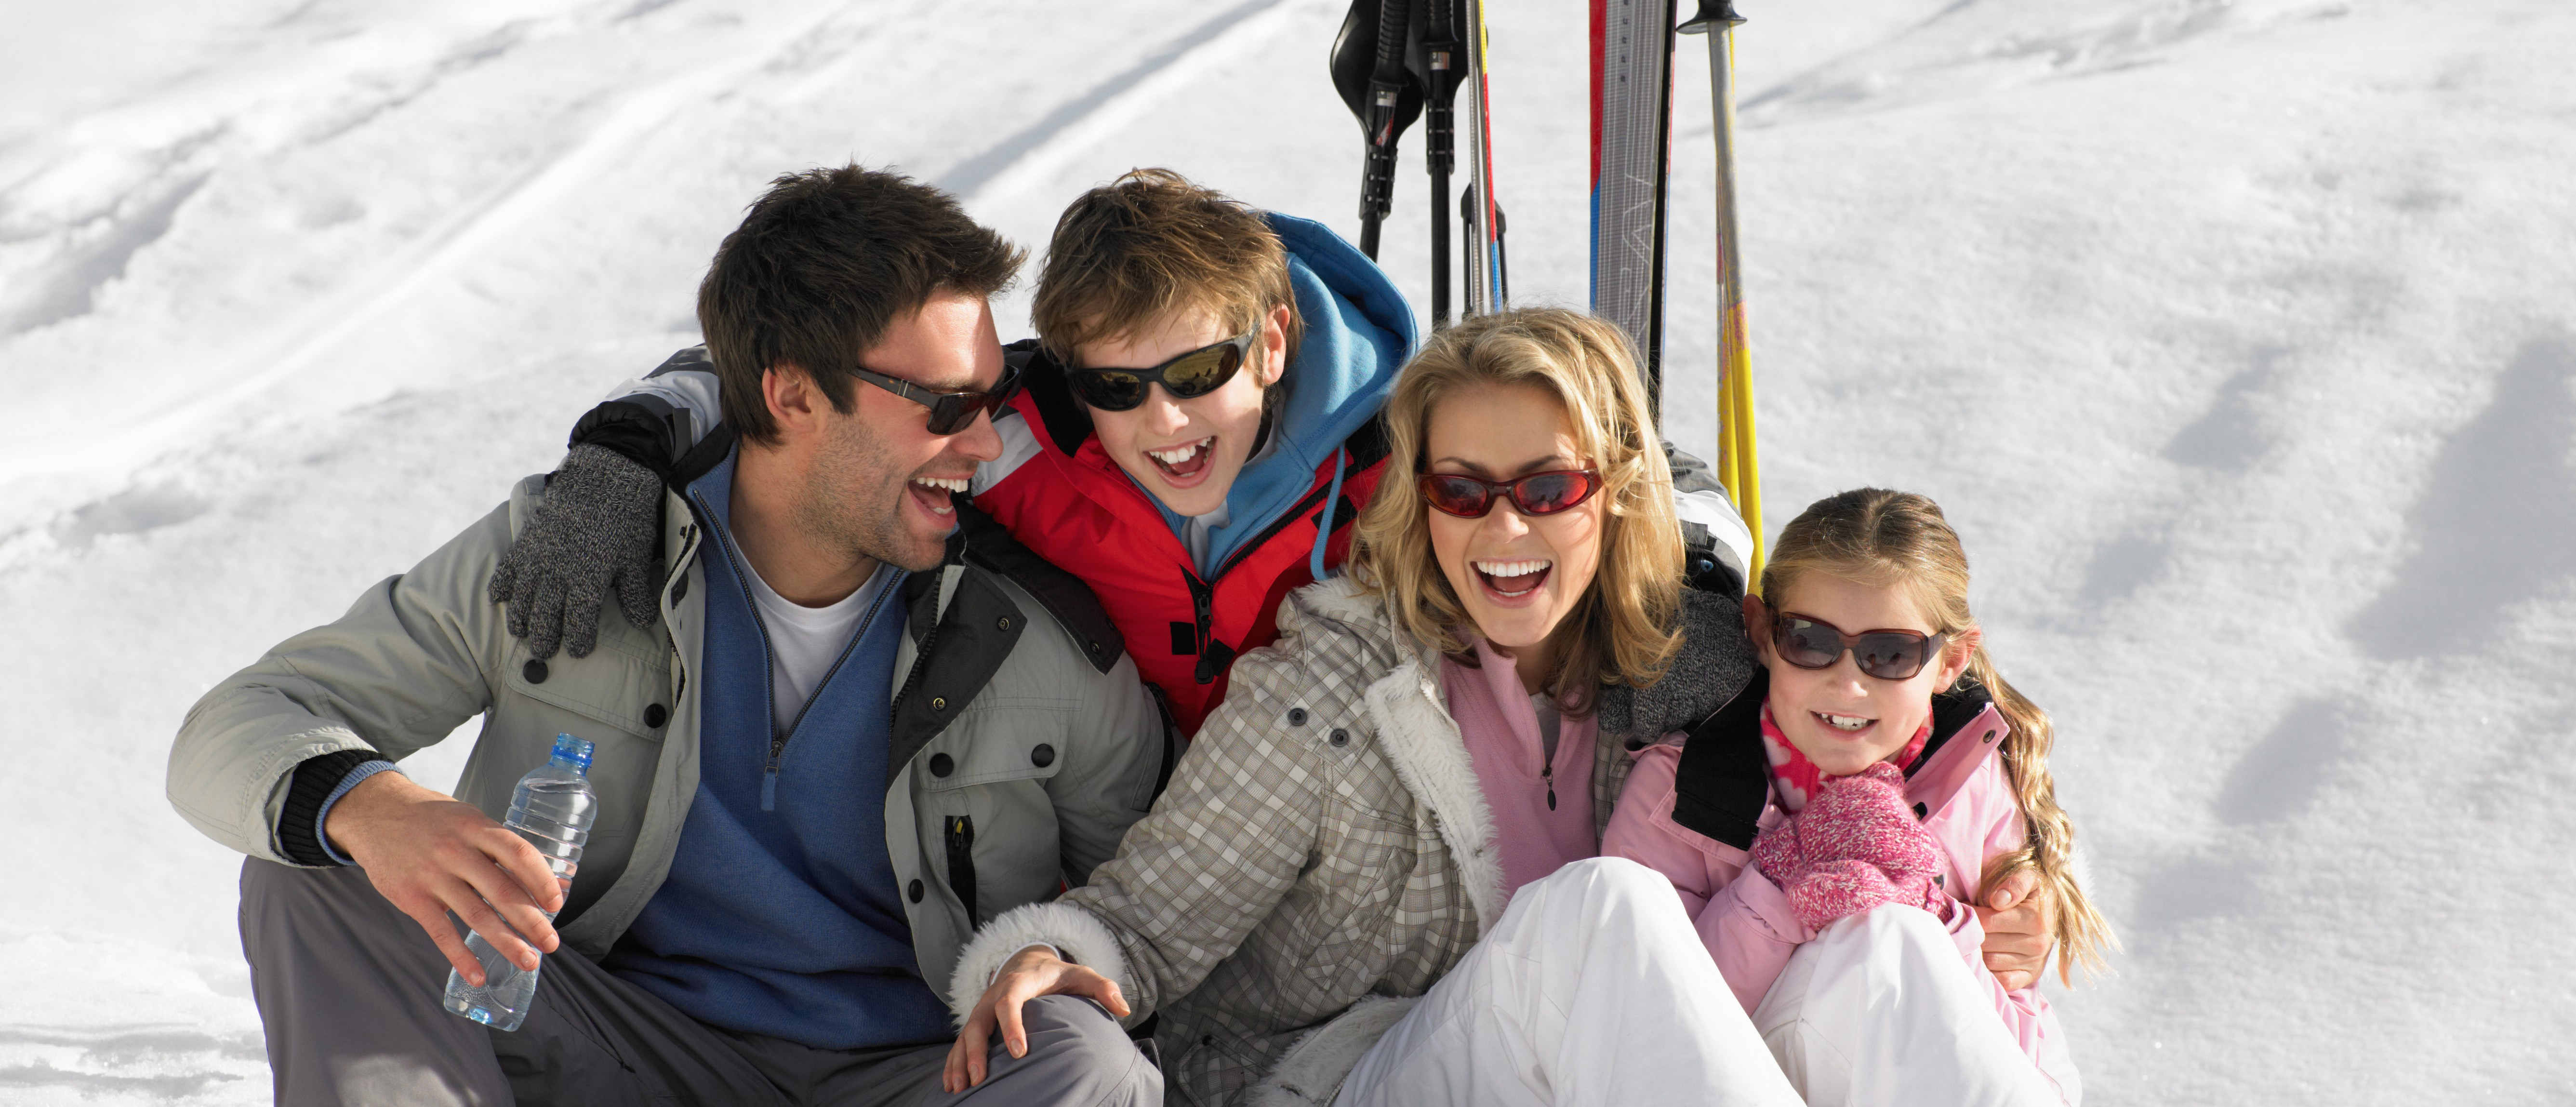 avoid injury on your Ski and Snowboarding holiday this year